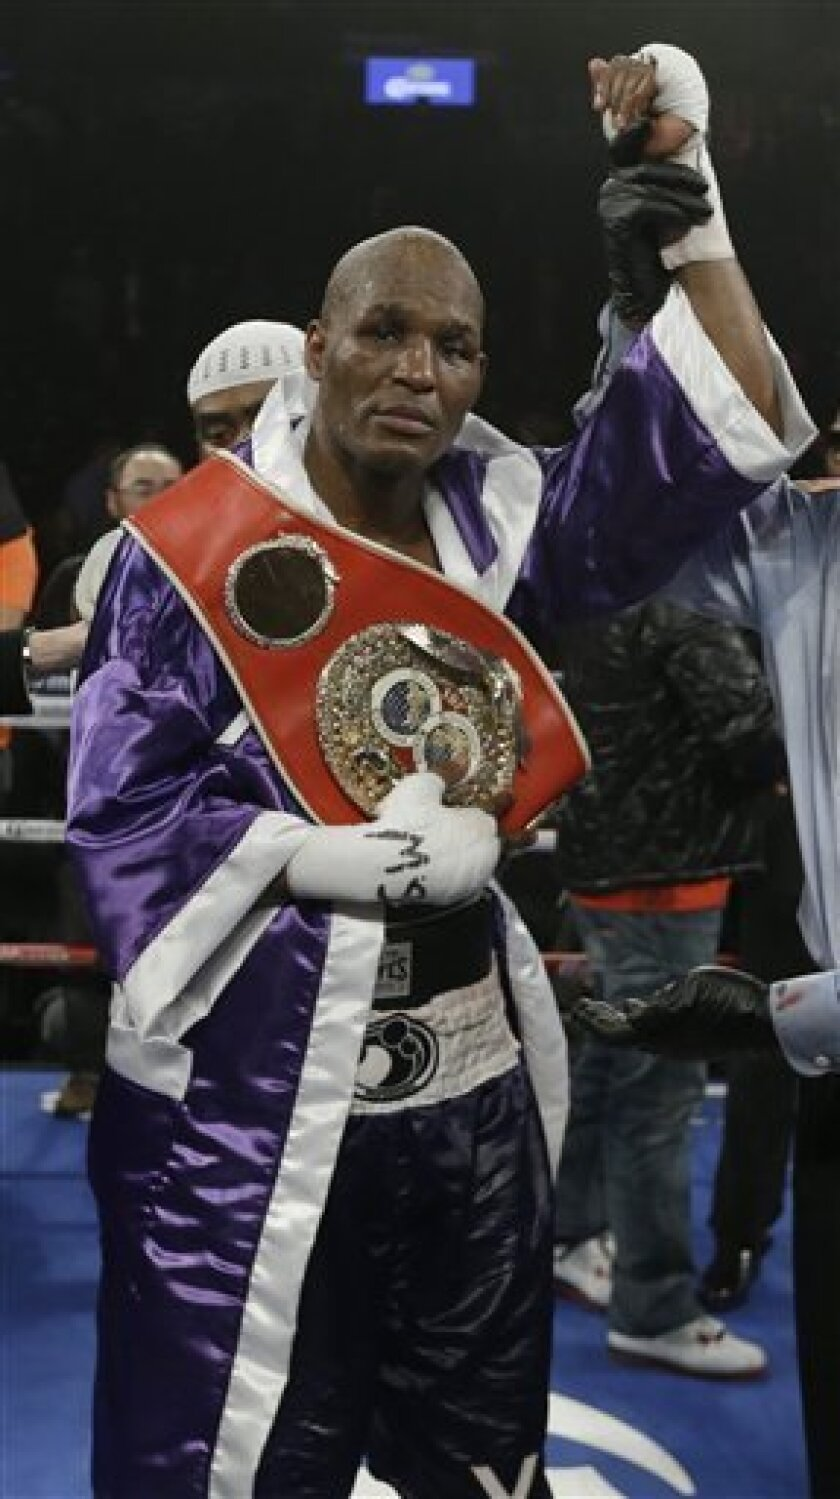 Bernard Hopkins poses for photographs after an IBF Light Heavyweight championship boxing match against Tavoris Cloud at the Barclays Center Saturday, March 9, 2013, in New York. Hopkins won by unanimous decision. (AP Photo/Frank Franklin II)